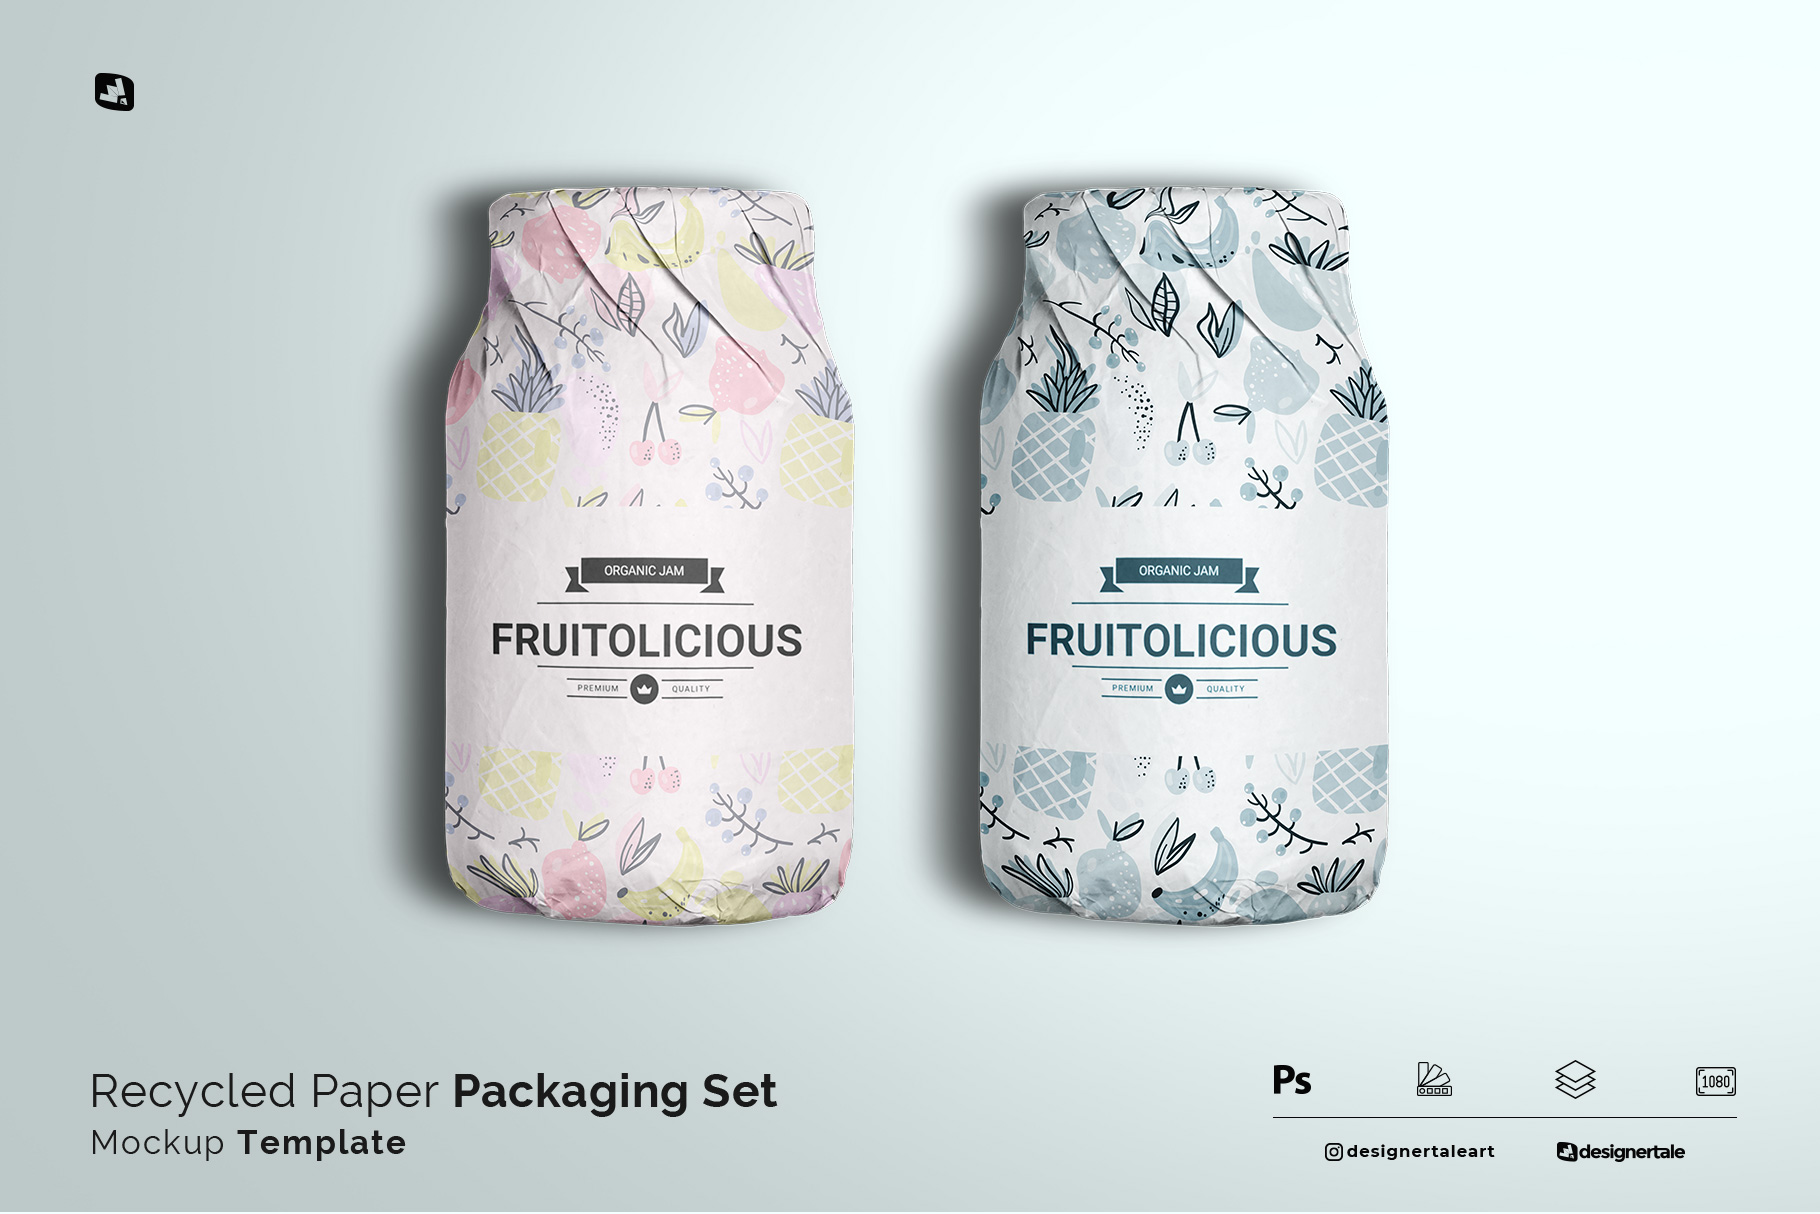 recycled paper packaging set mockup